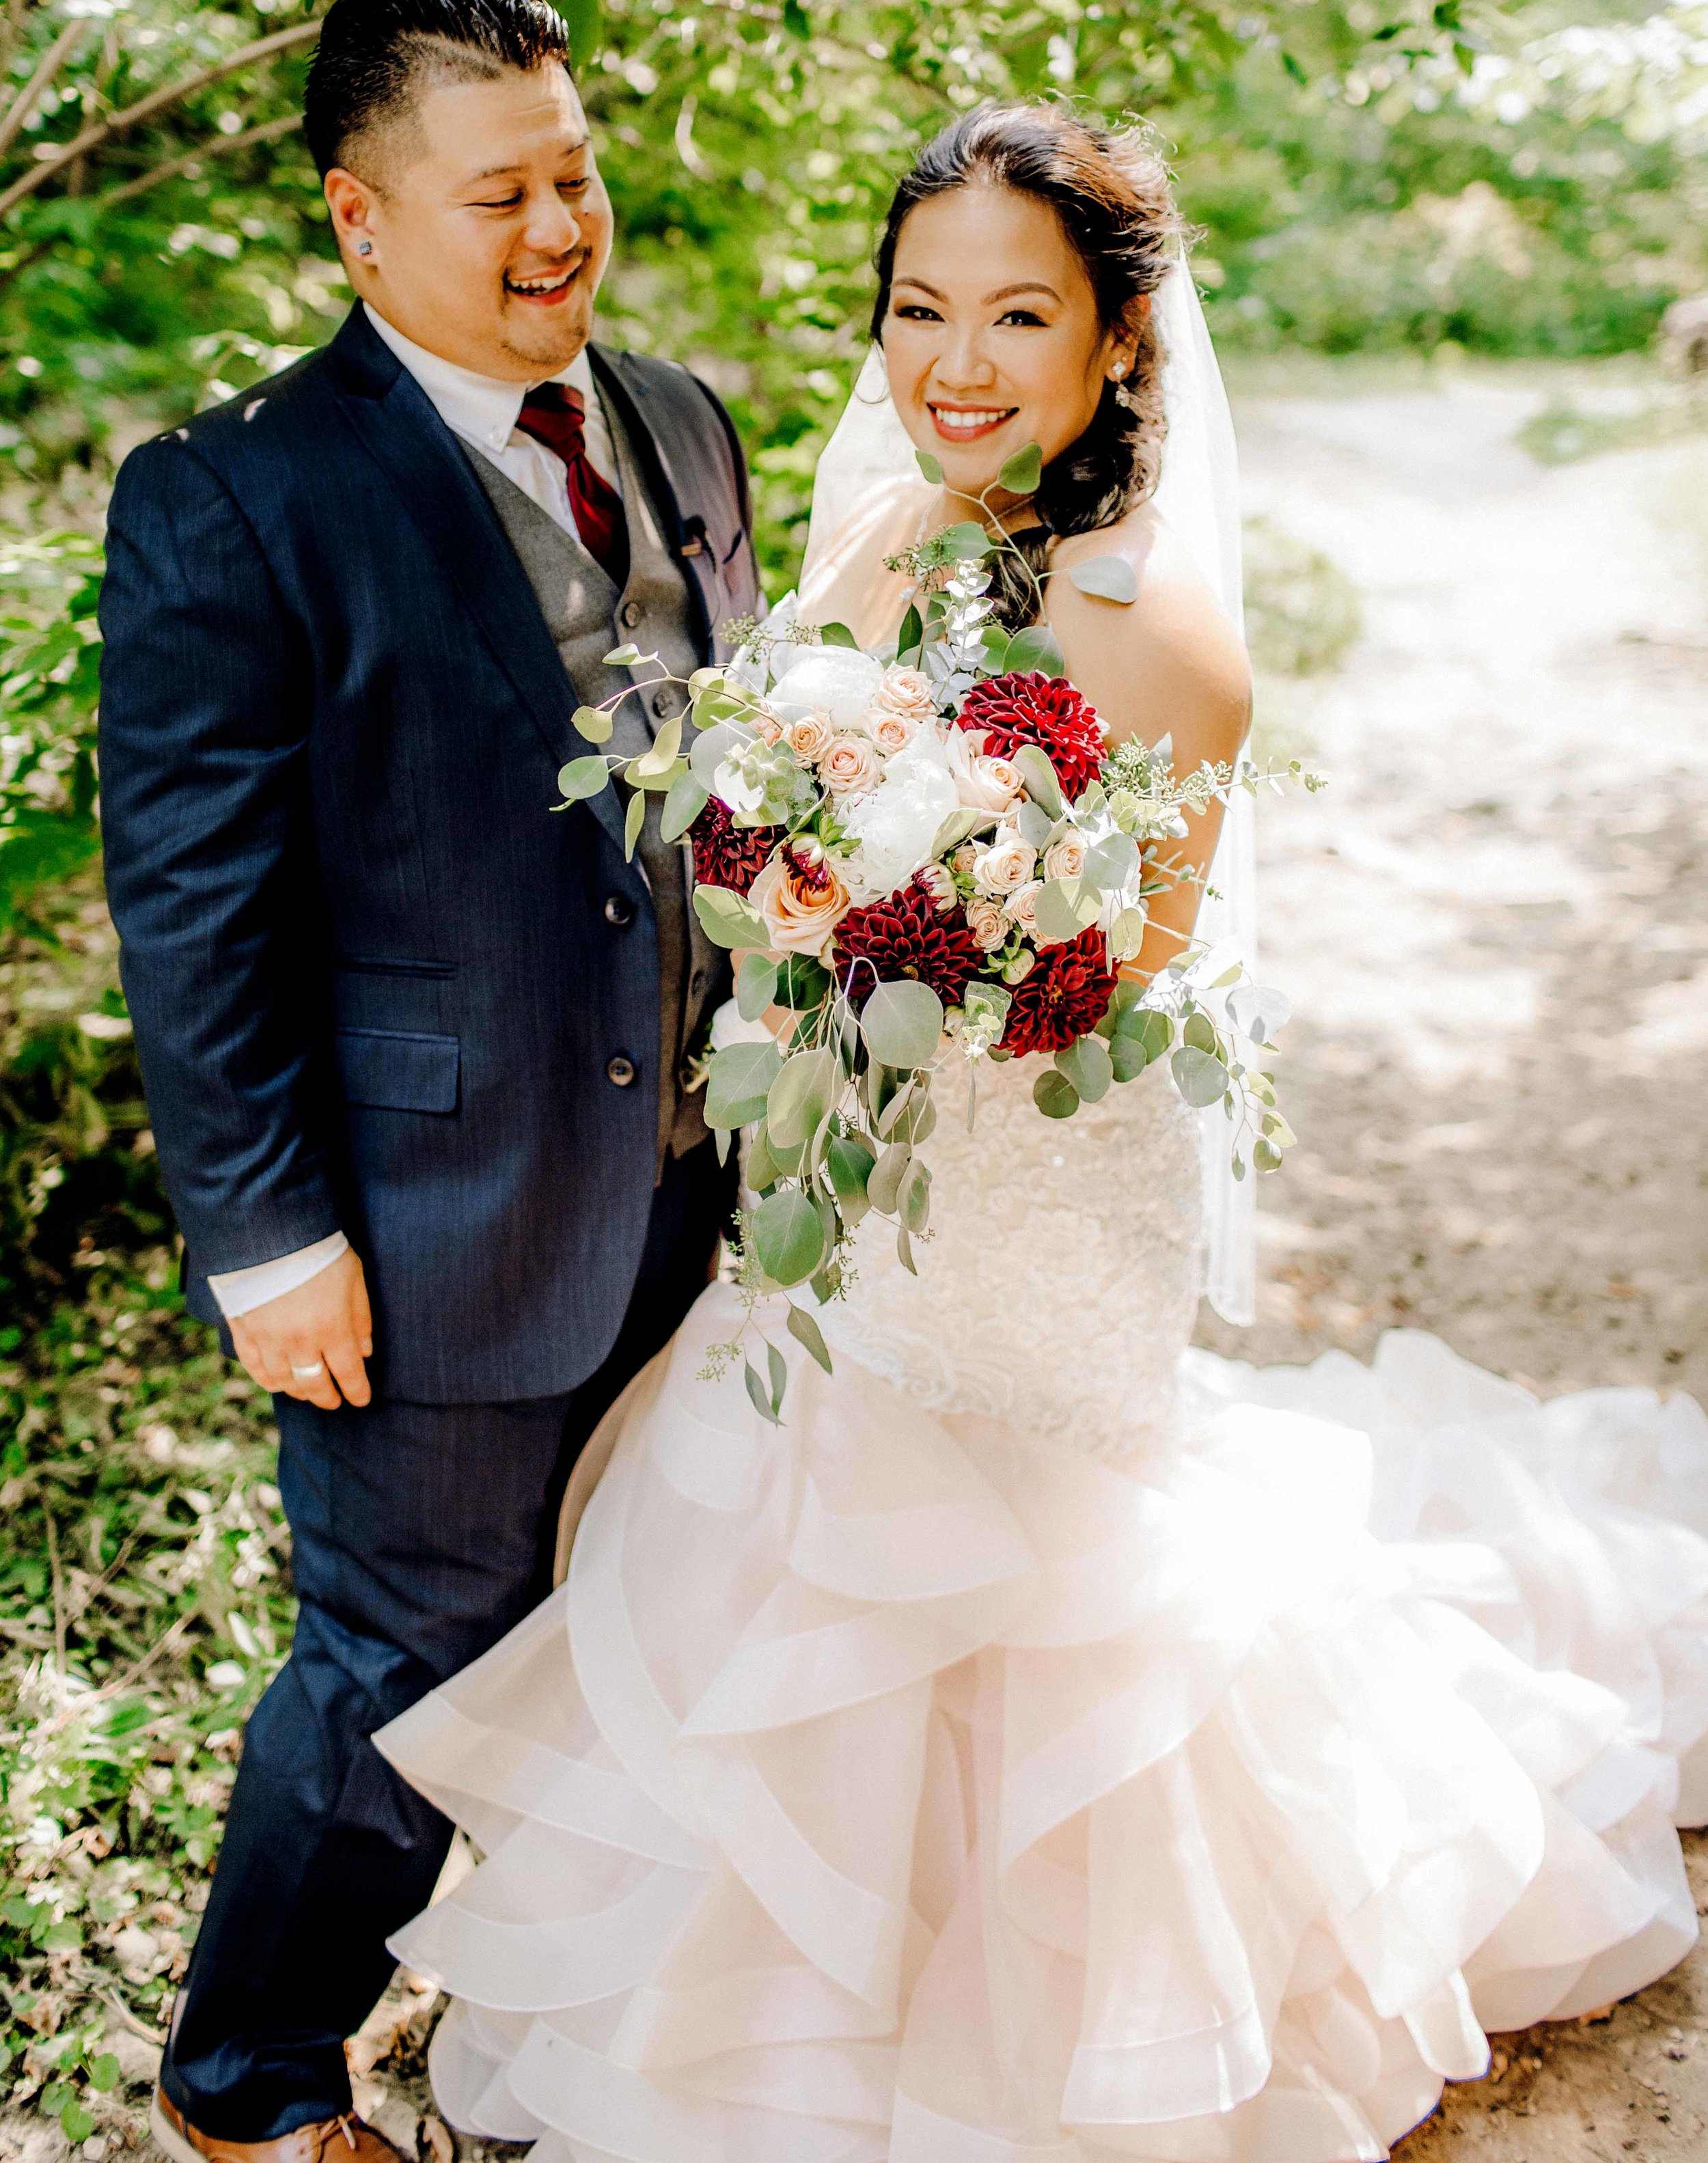 Becky + Kong, Part II, Bride, Groom, and Party-47.jpg